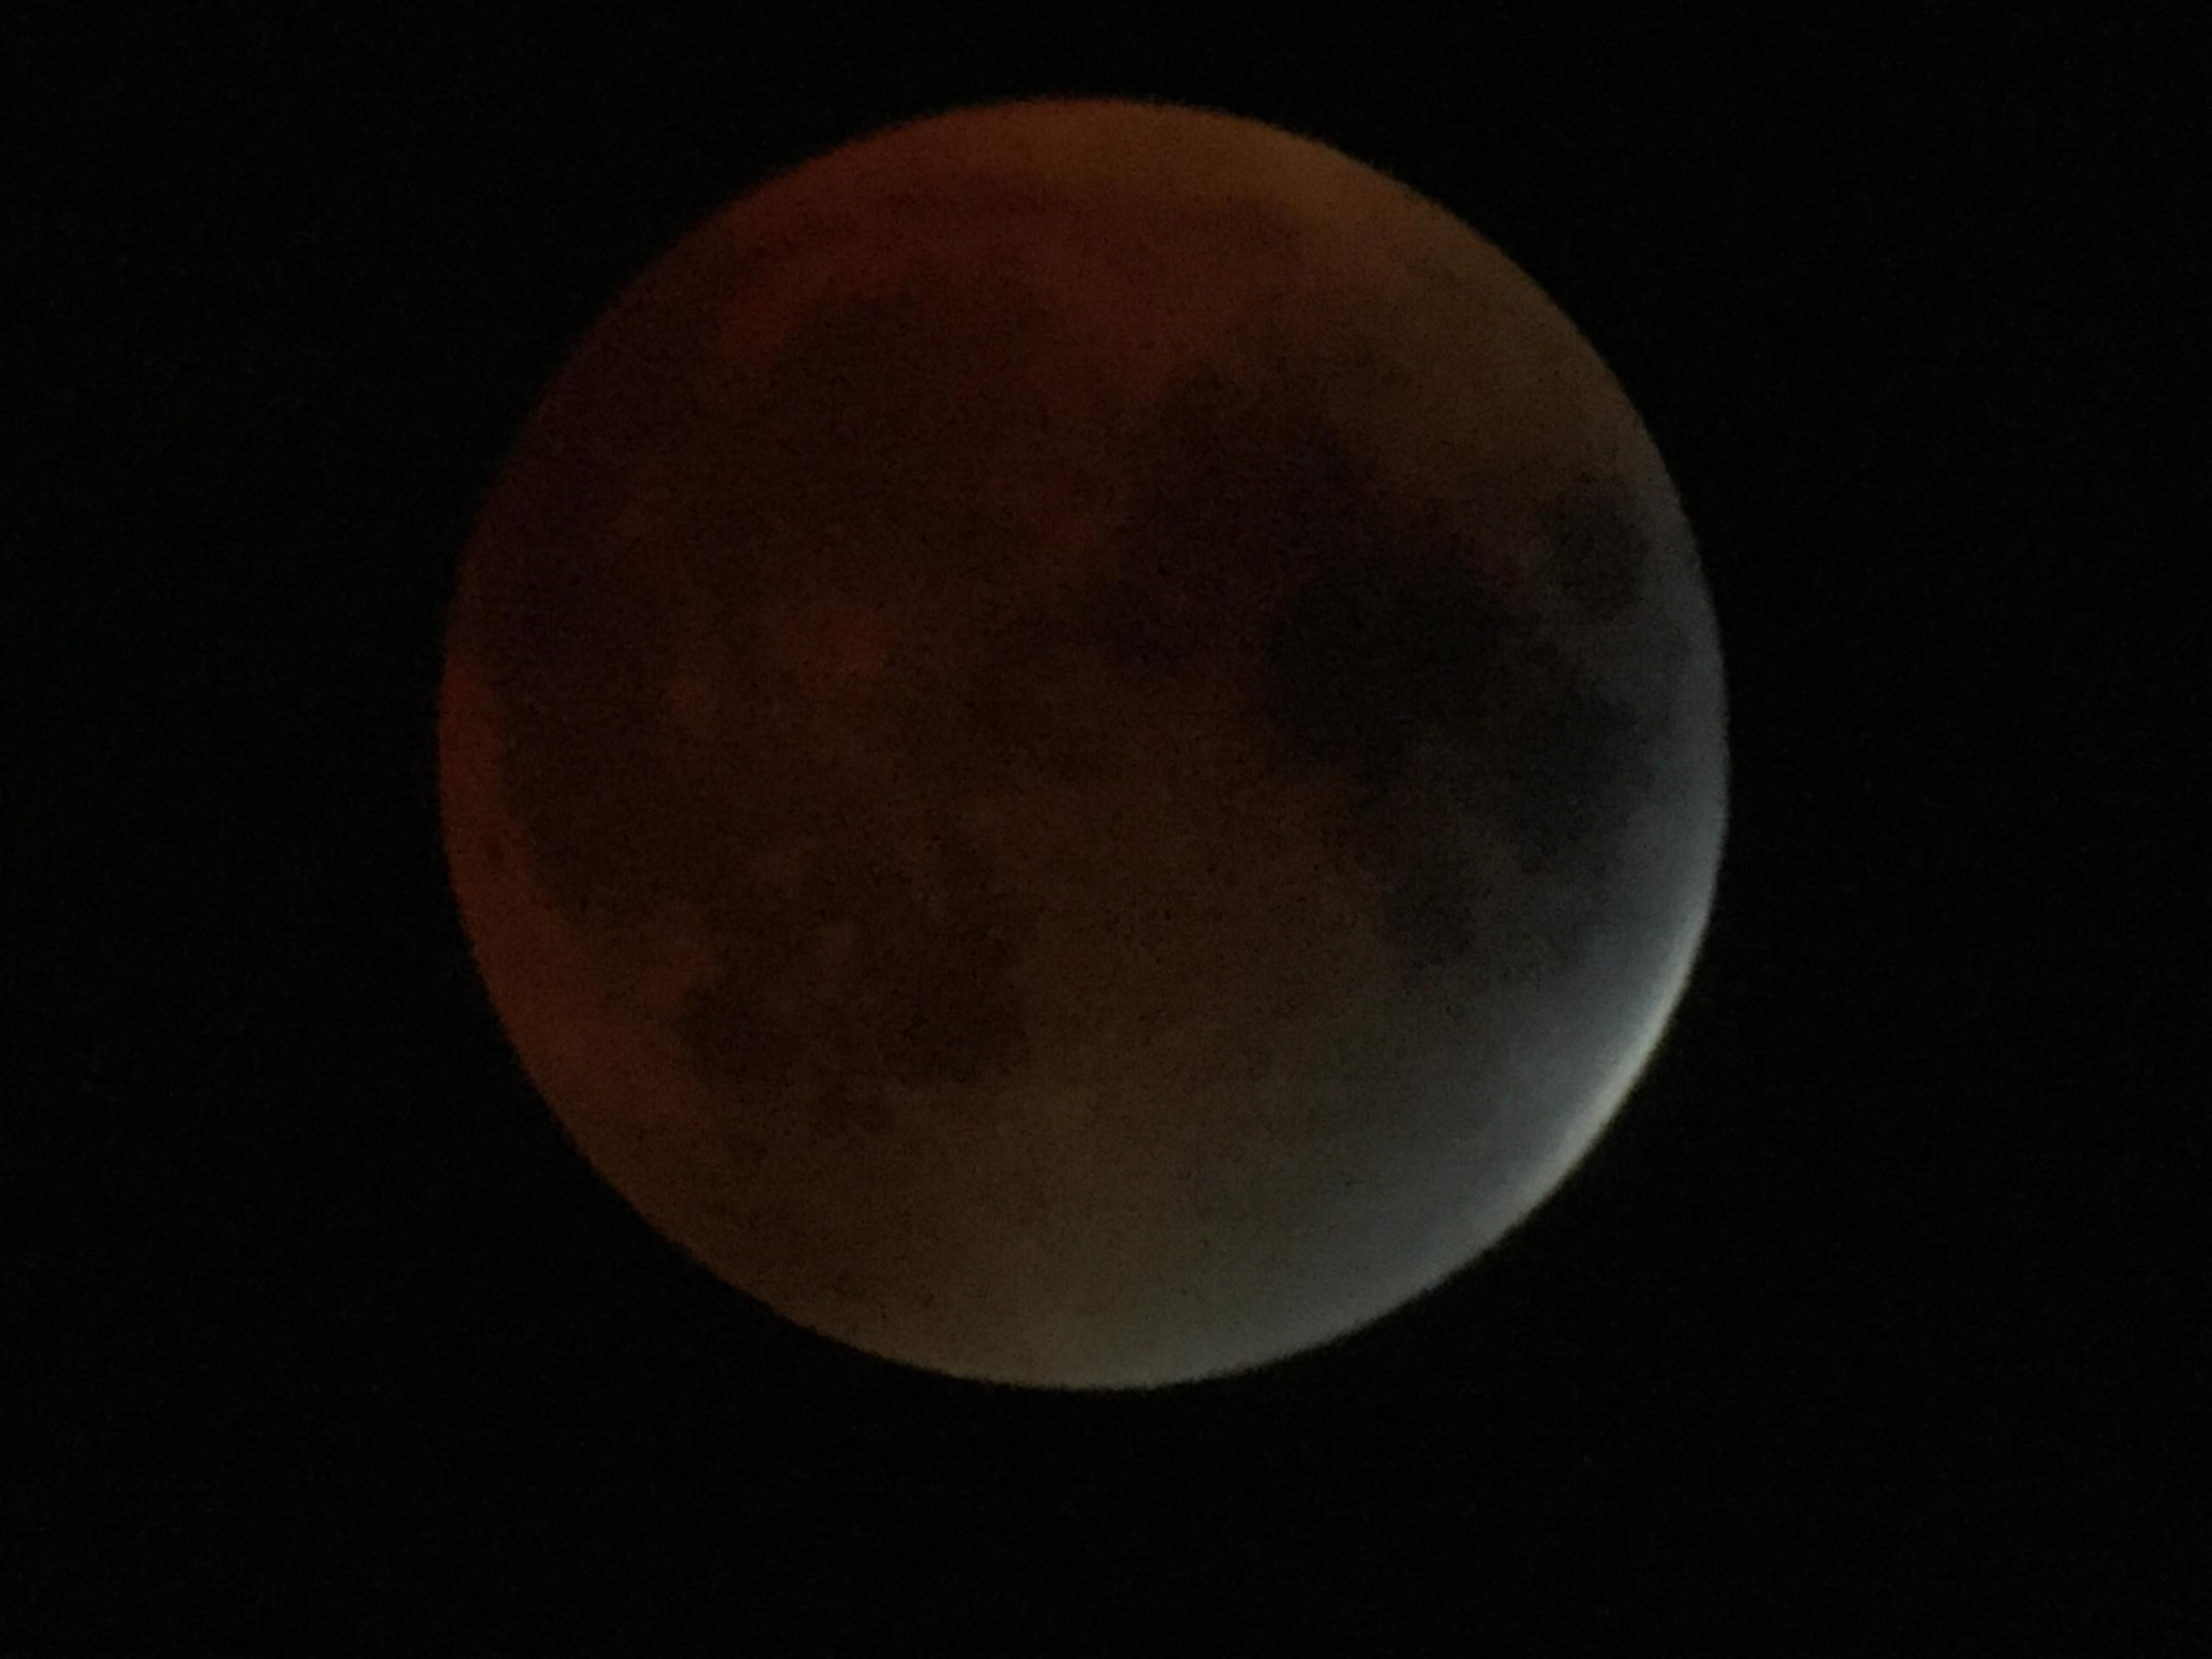 Total Lunar Eclipse via Smartphone in Mass.